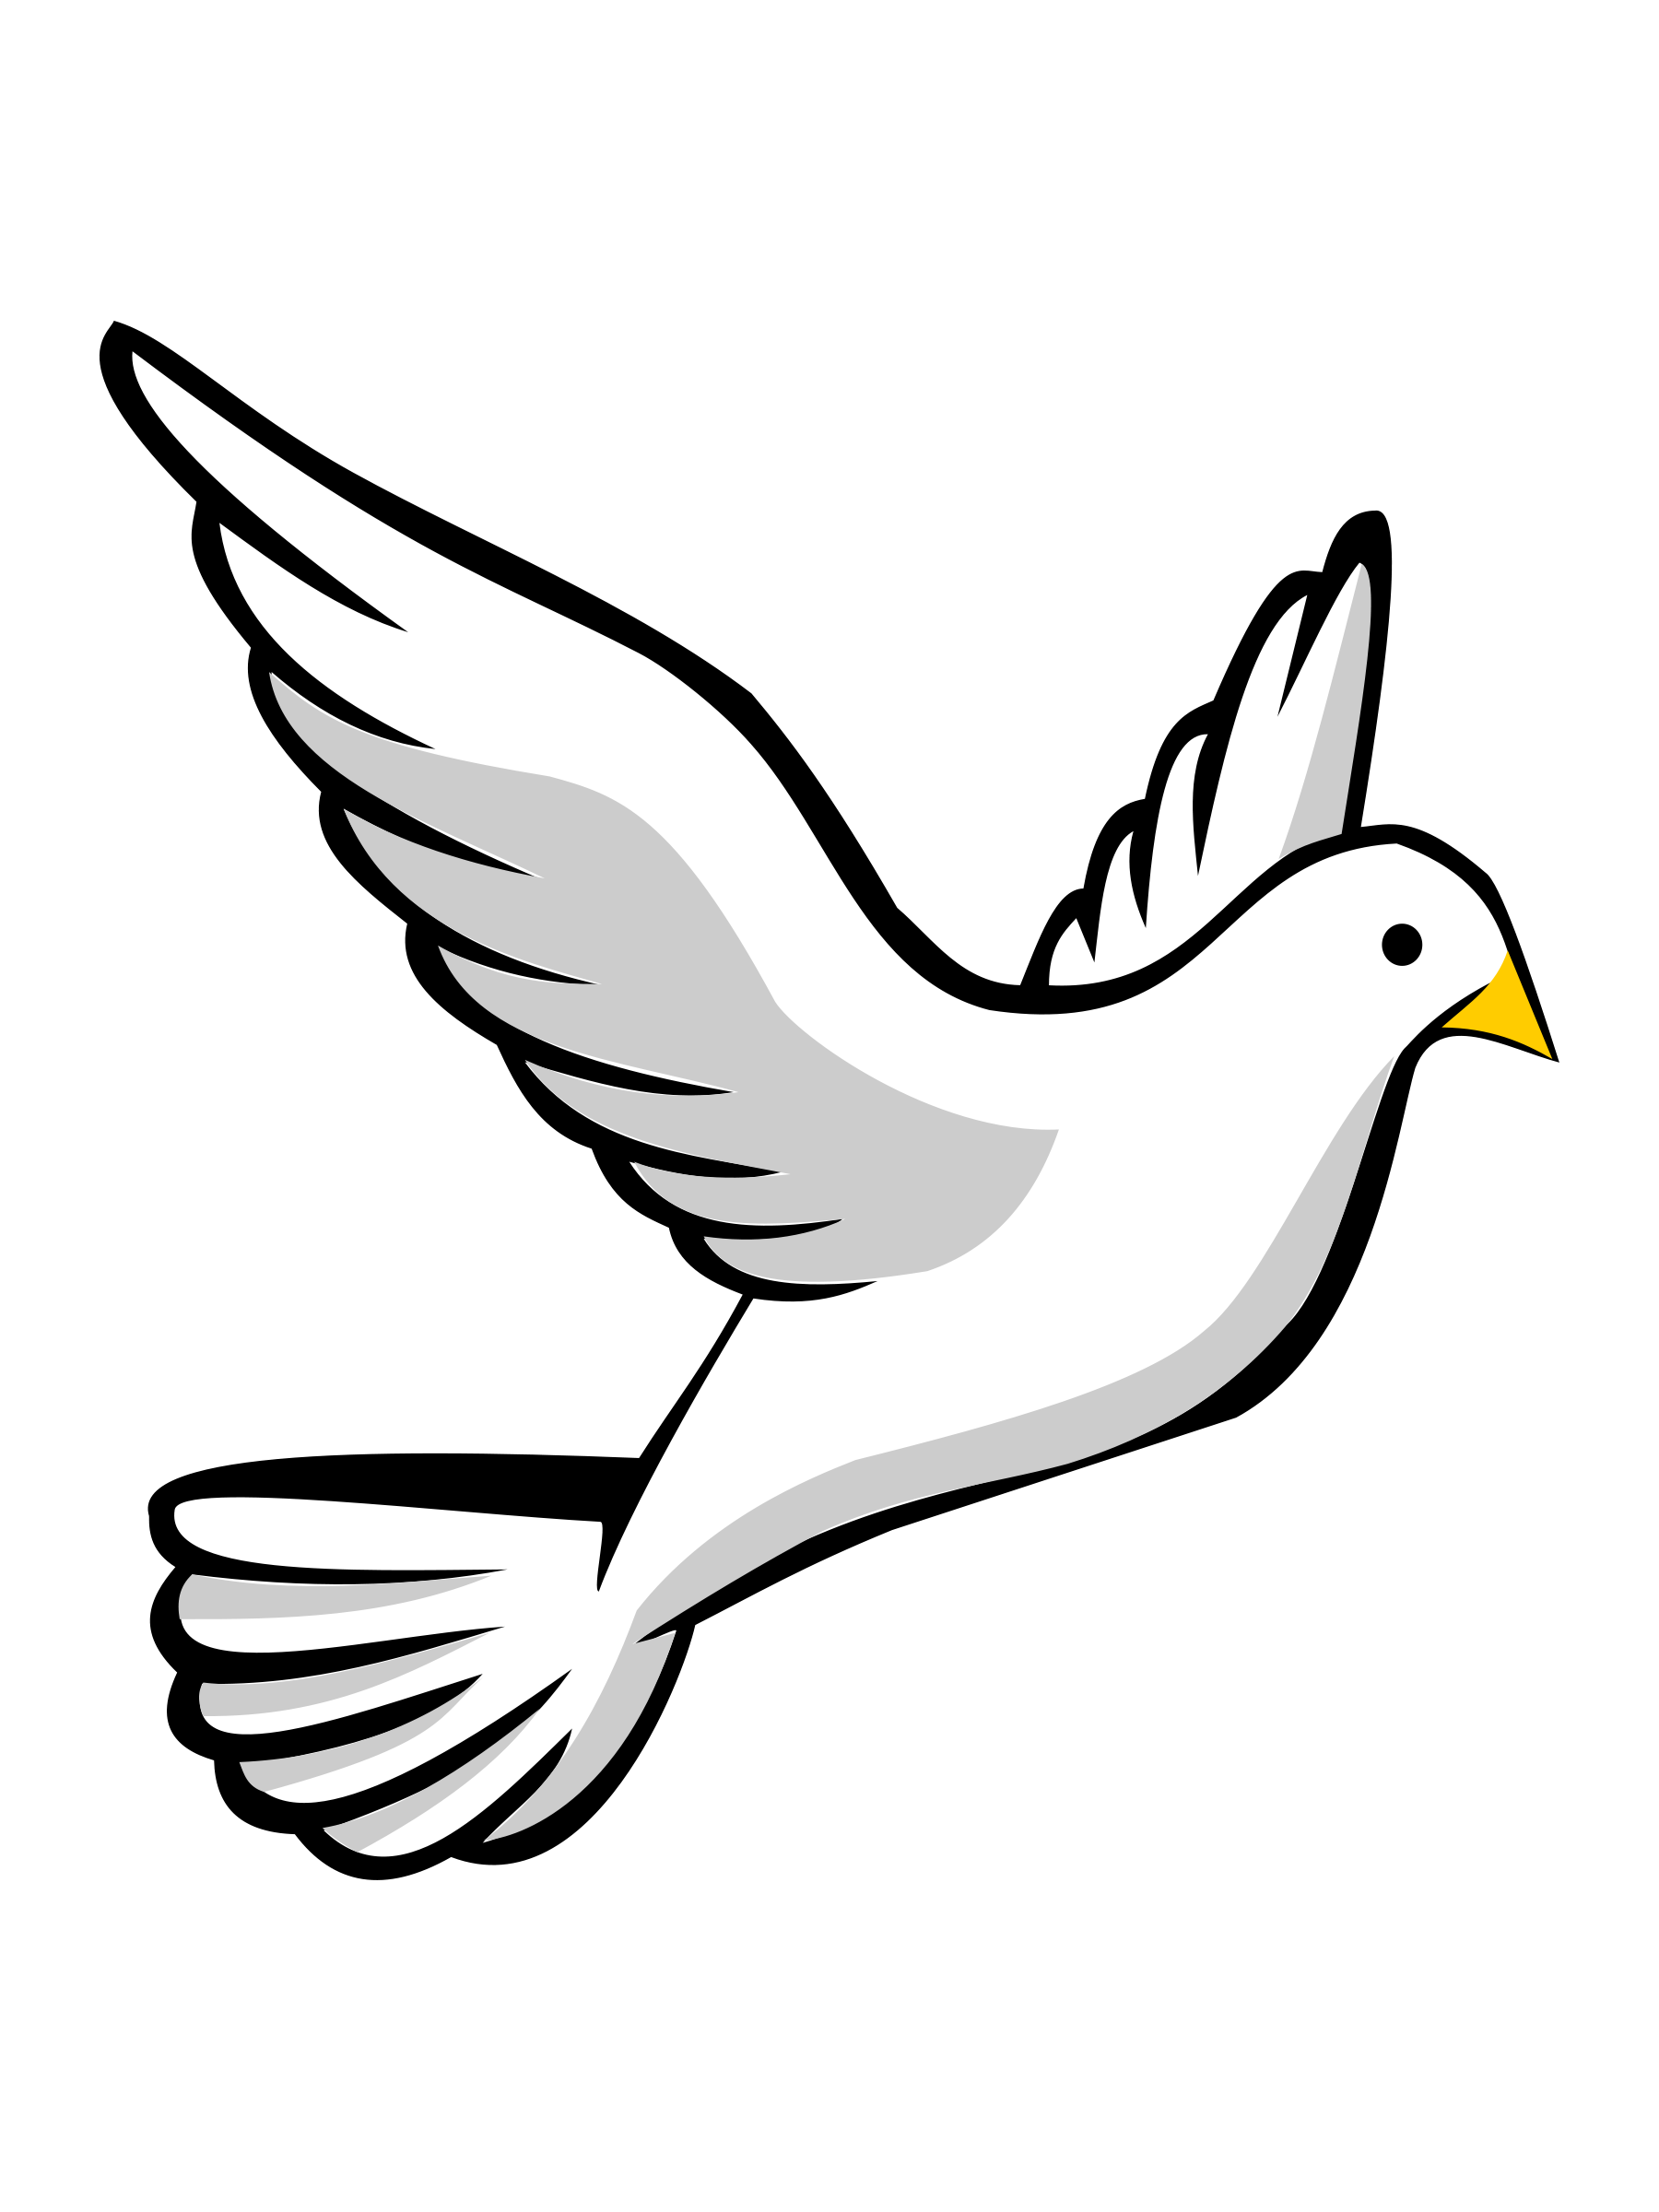 Holy Spirit Dove Png Black And White Free 2